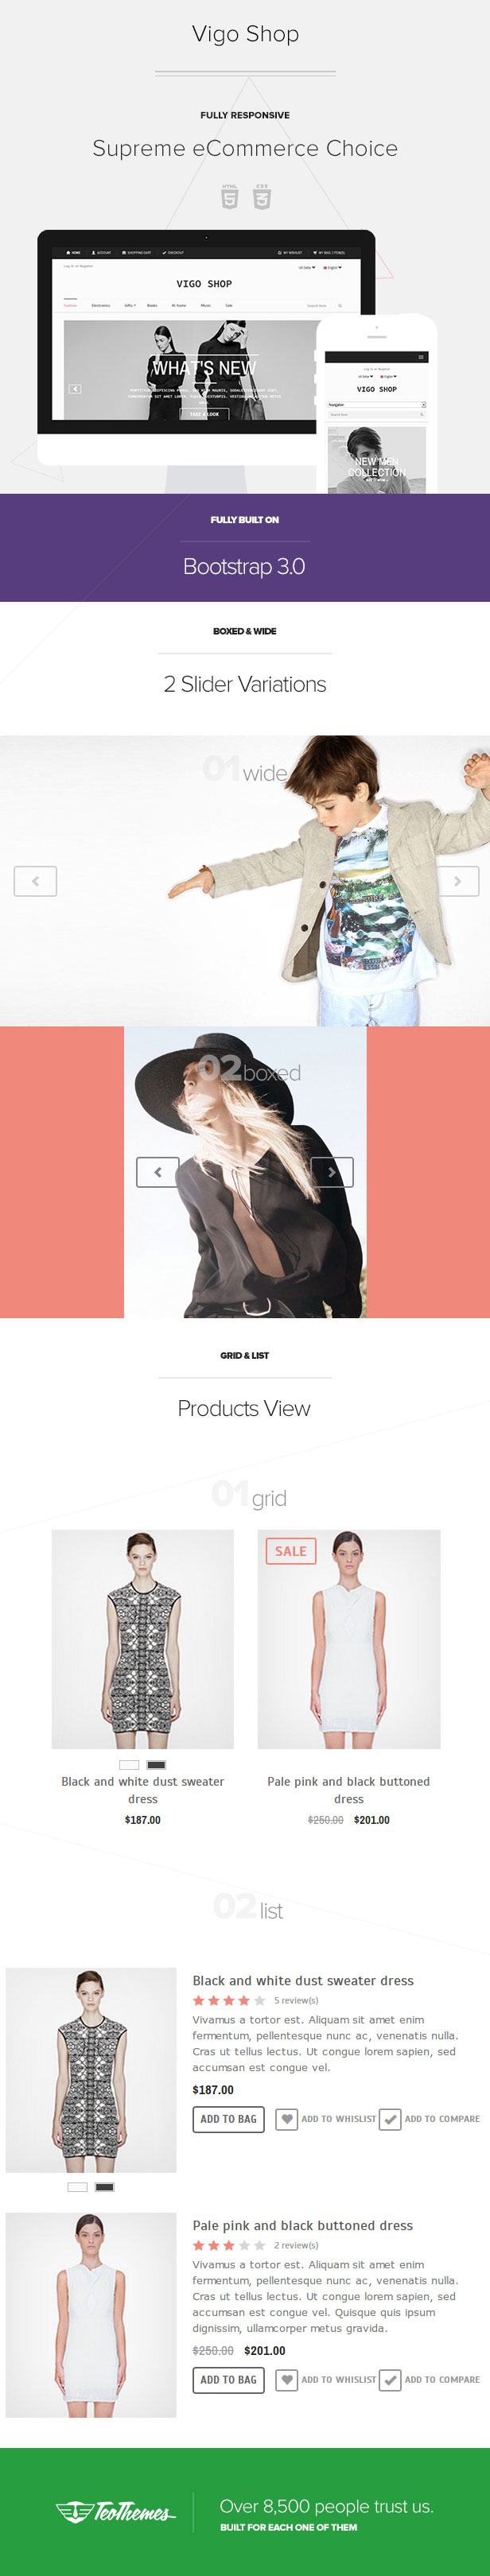 Vigo Shop - Responsive eCommerce Template - 6